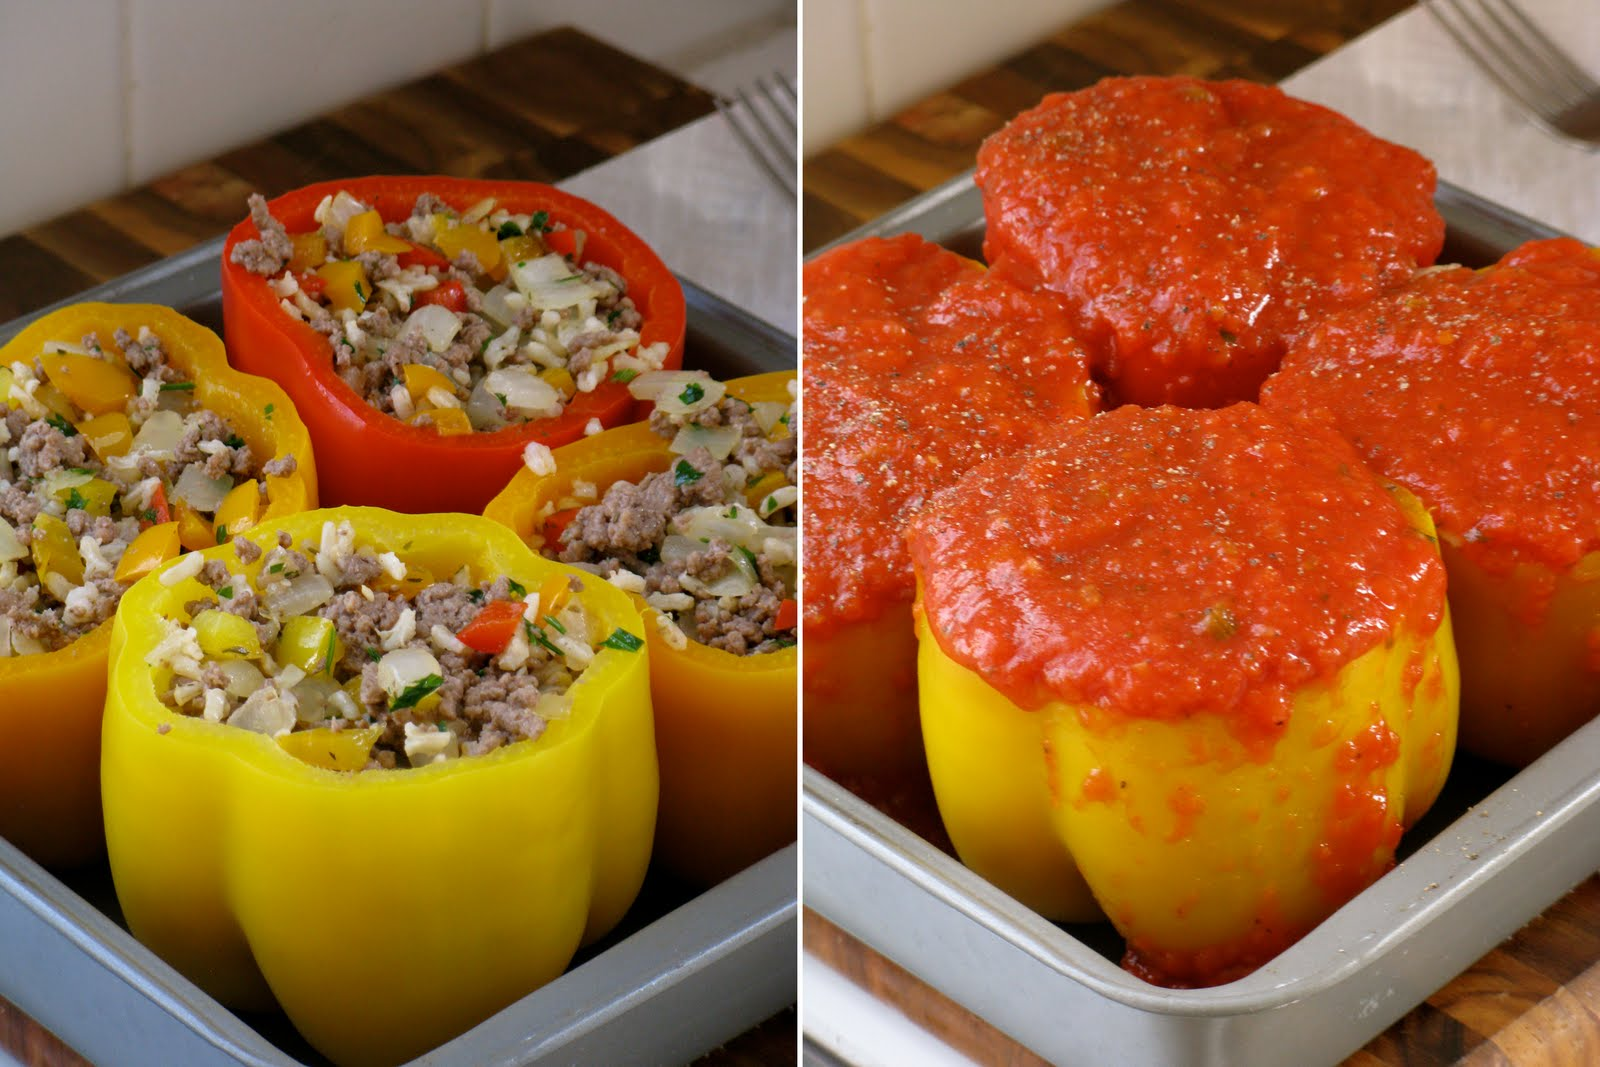 The cilantropist classic stuffed peppers